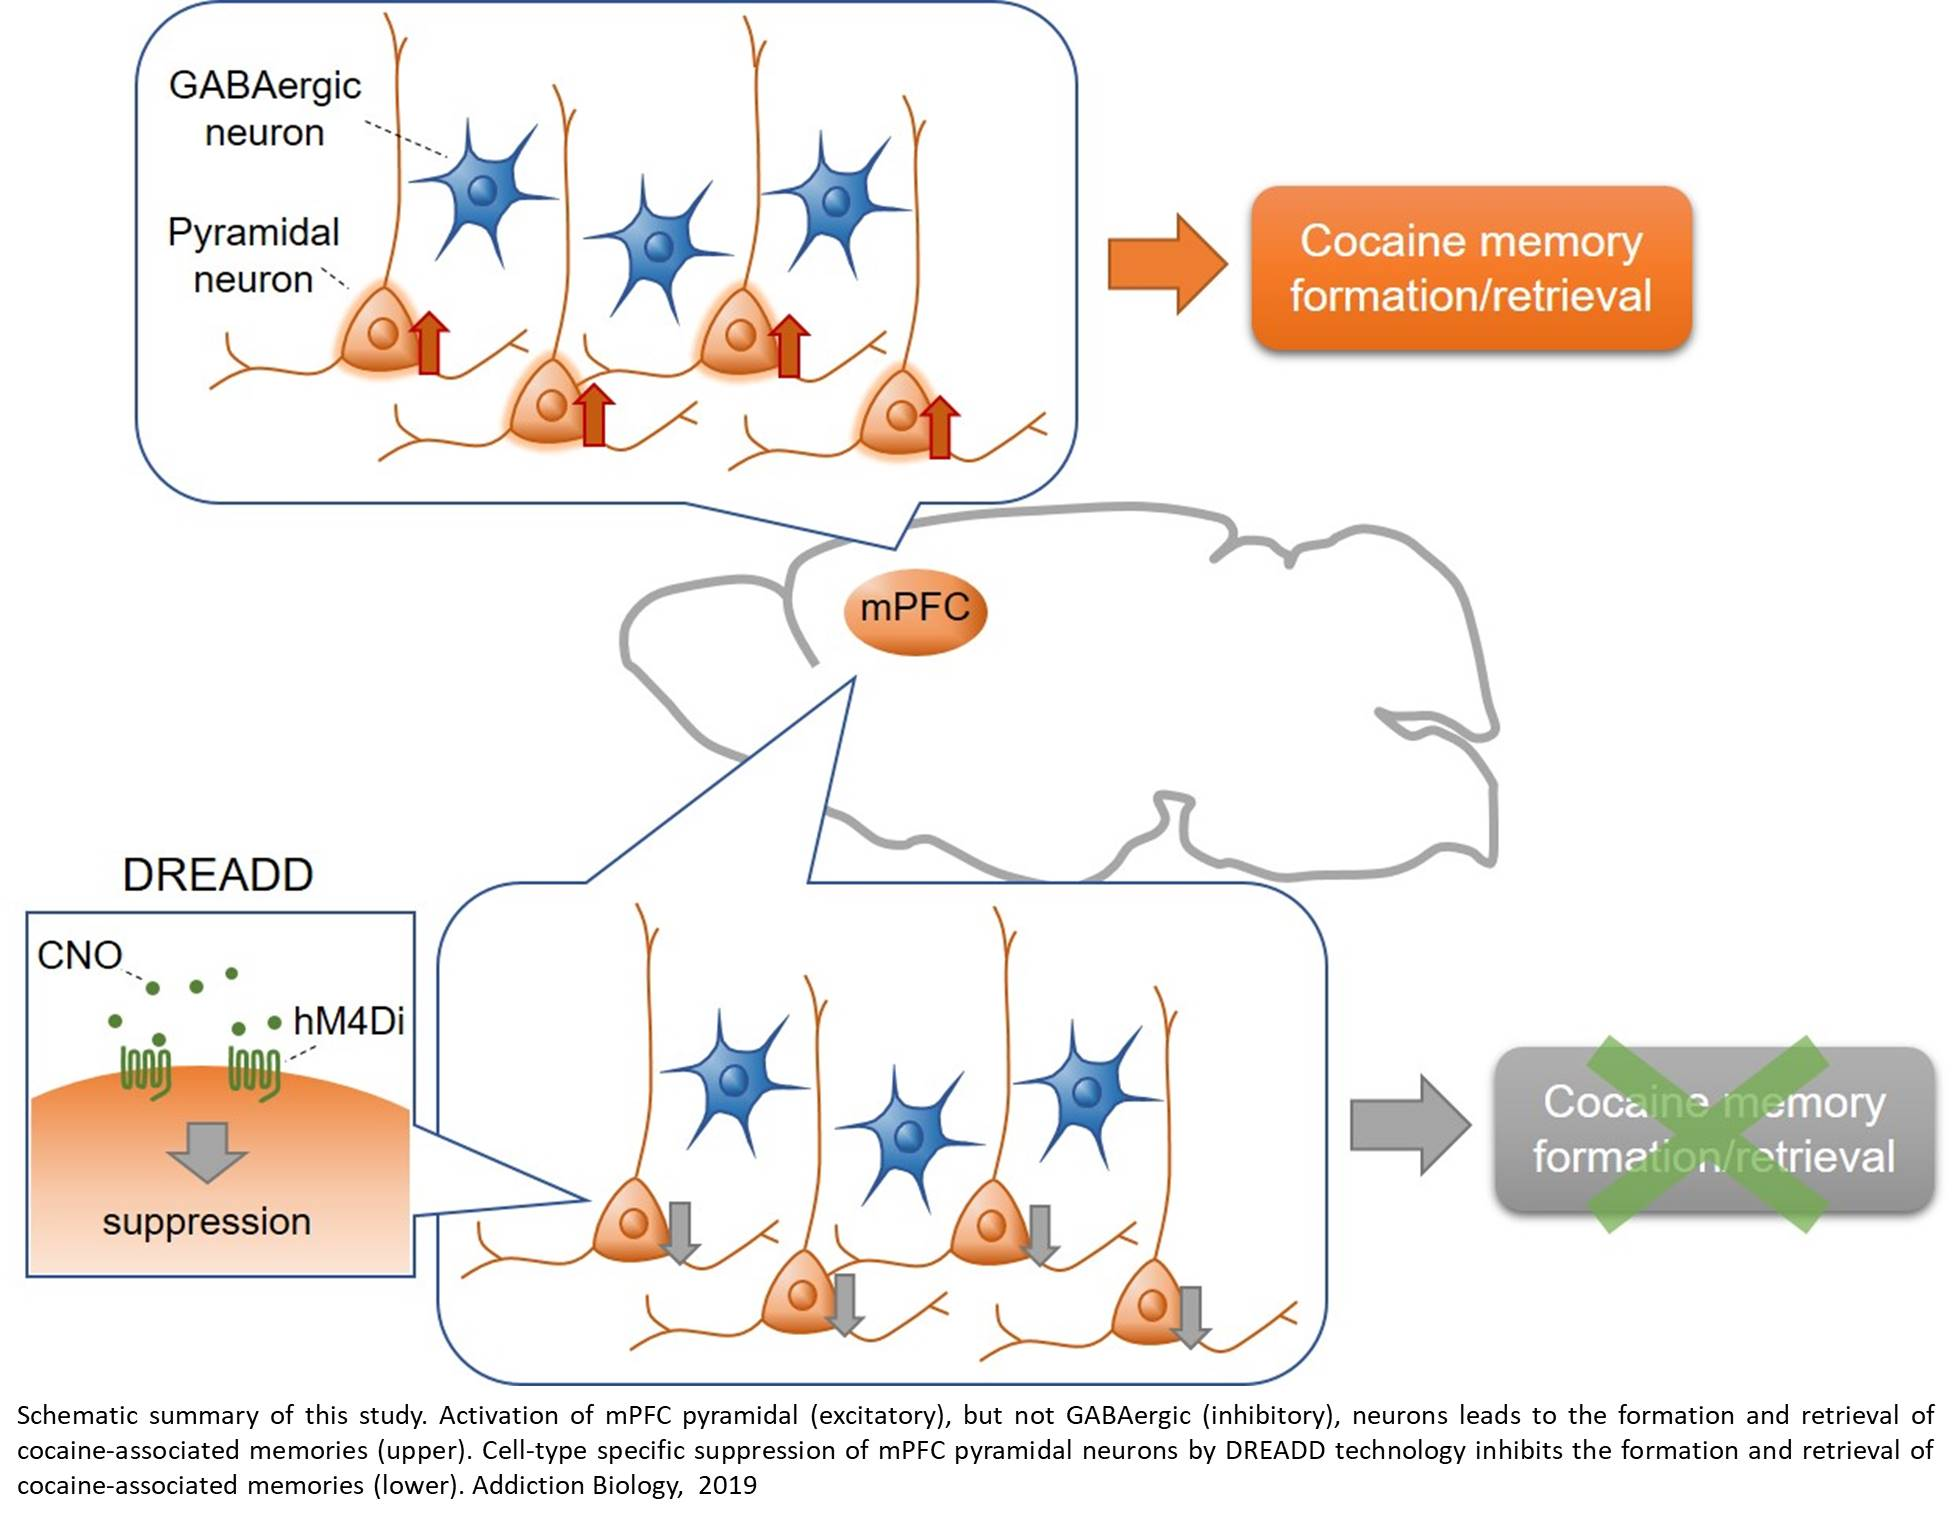 Cell-type specific mechanism for formation and retrieval of cocaine-associated memories